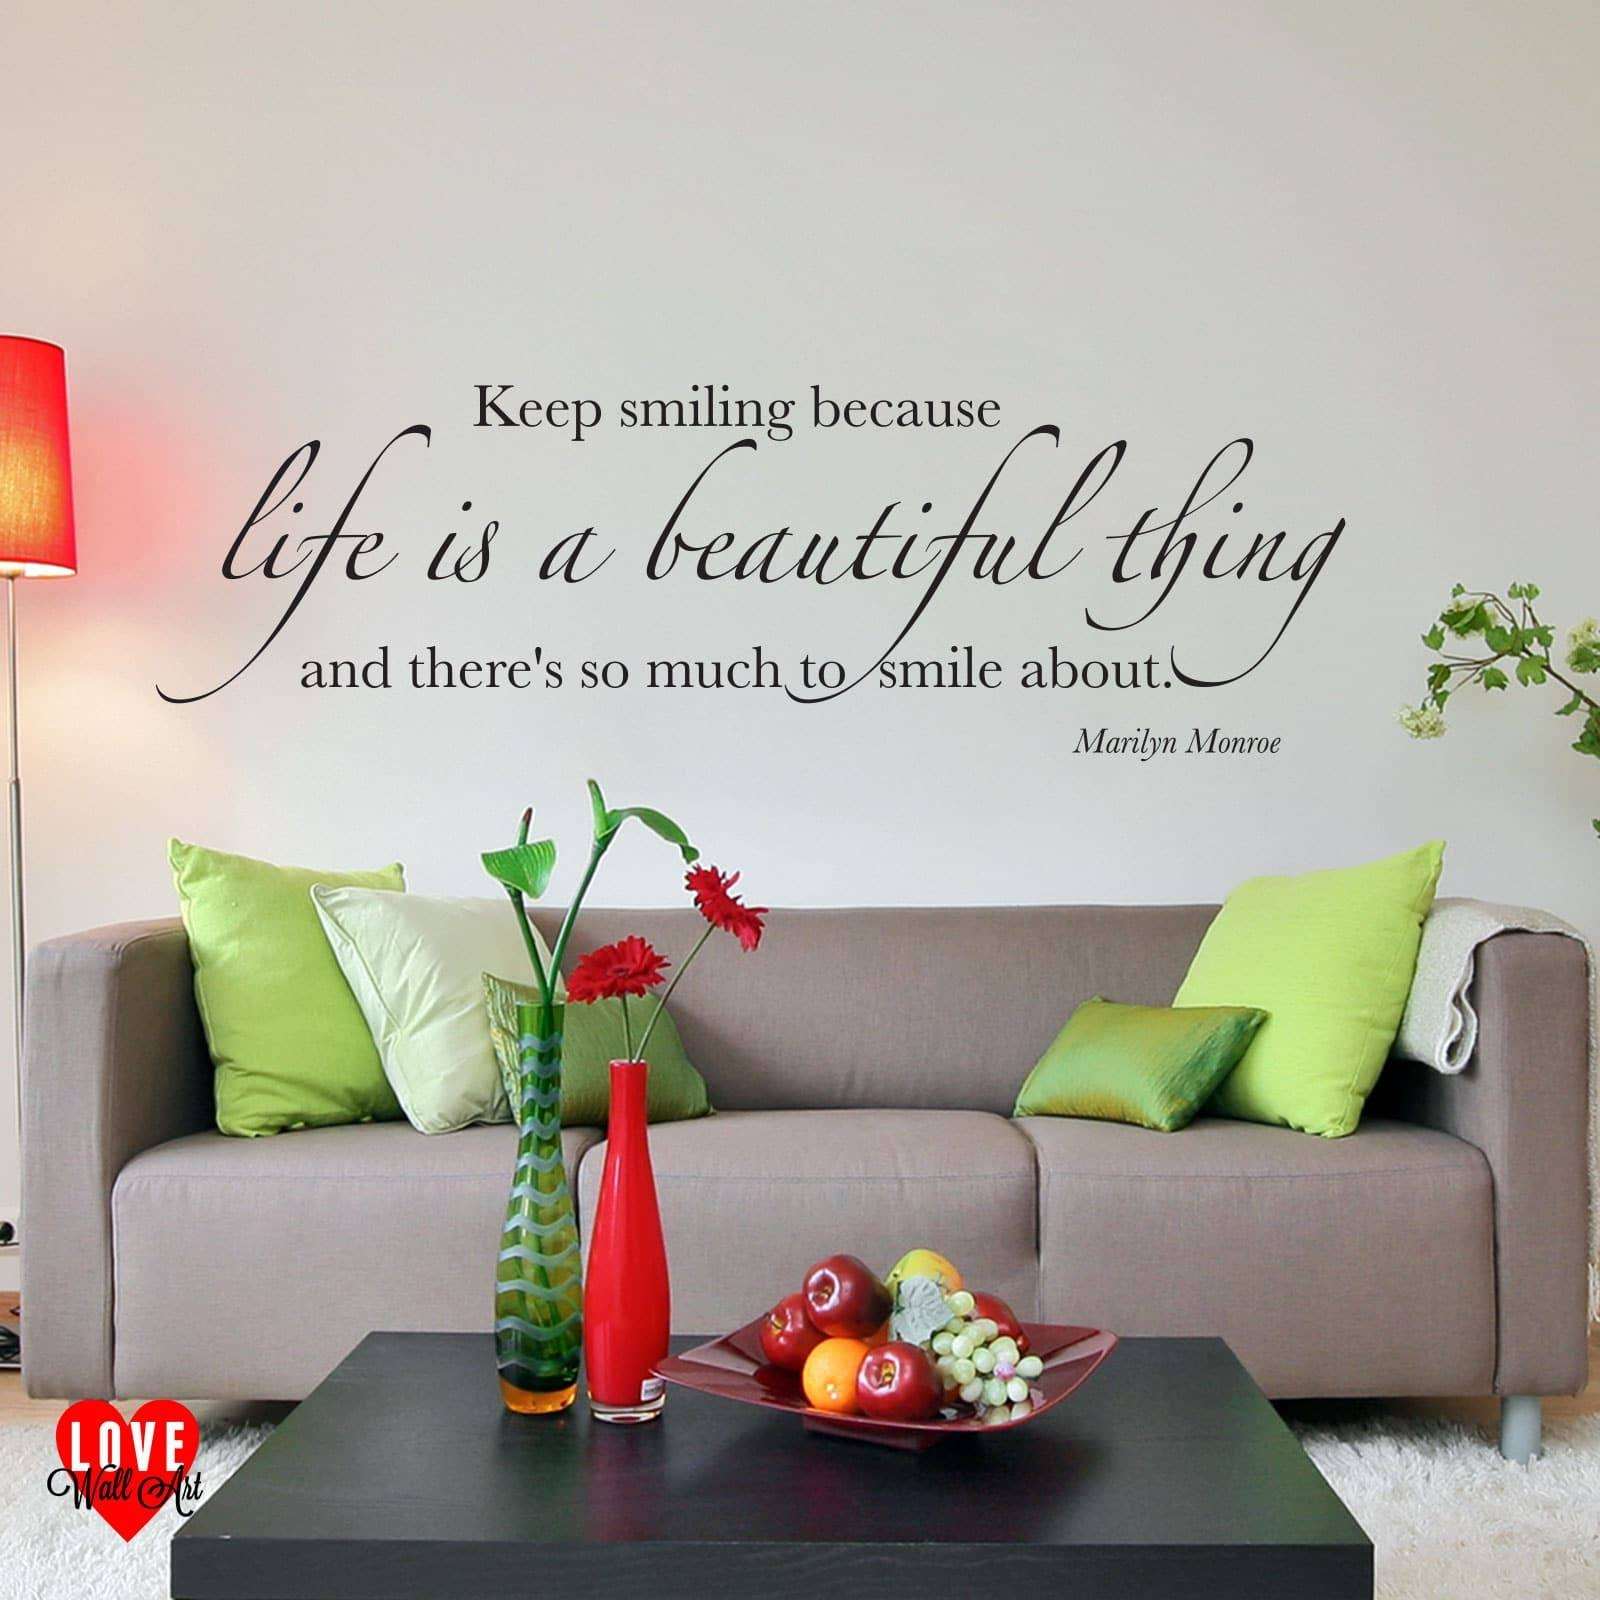 Is A Beautiful Thing Marilyn Monroe Quote Wall Art Sticker Throughout 2018 Marilyn Monroe Wall Art (Gallery 13 of 25)